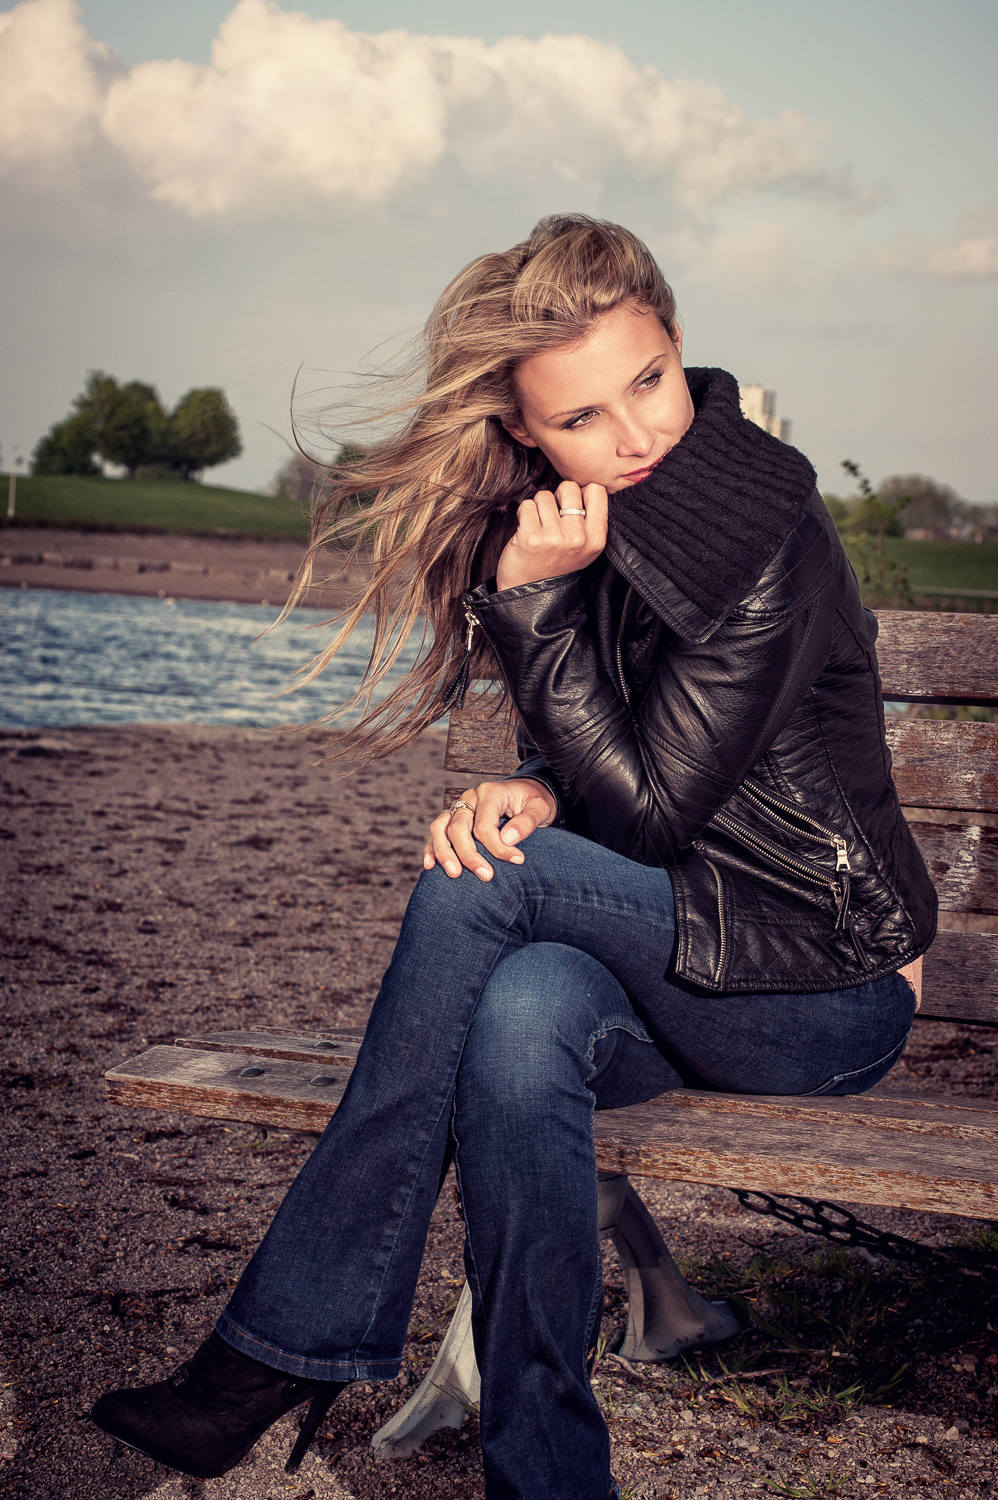 Hamilton Toronto Fashion Photographer -  Lakeside Bench by Marek Michalek.jpg